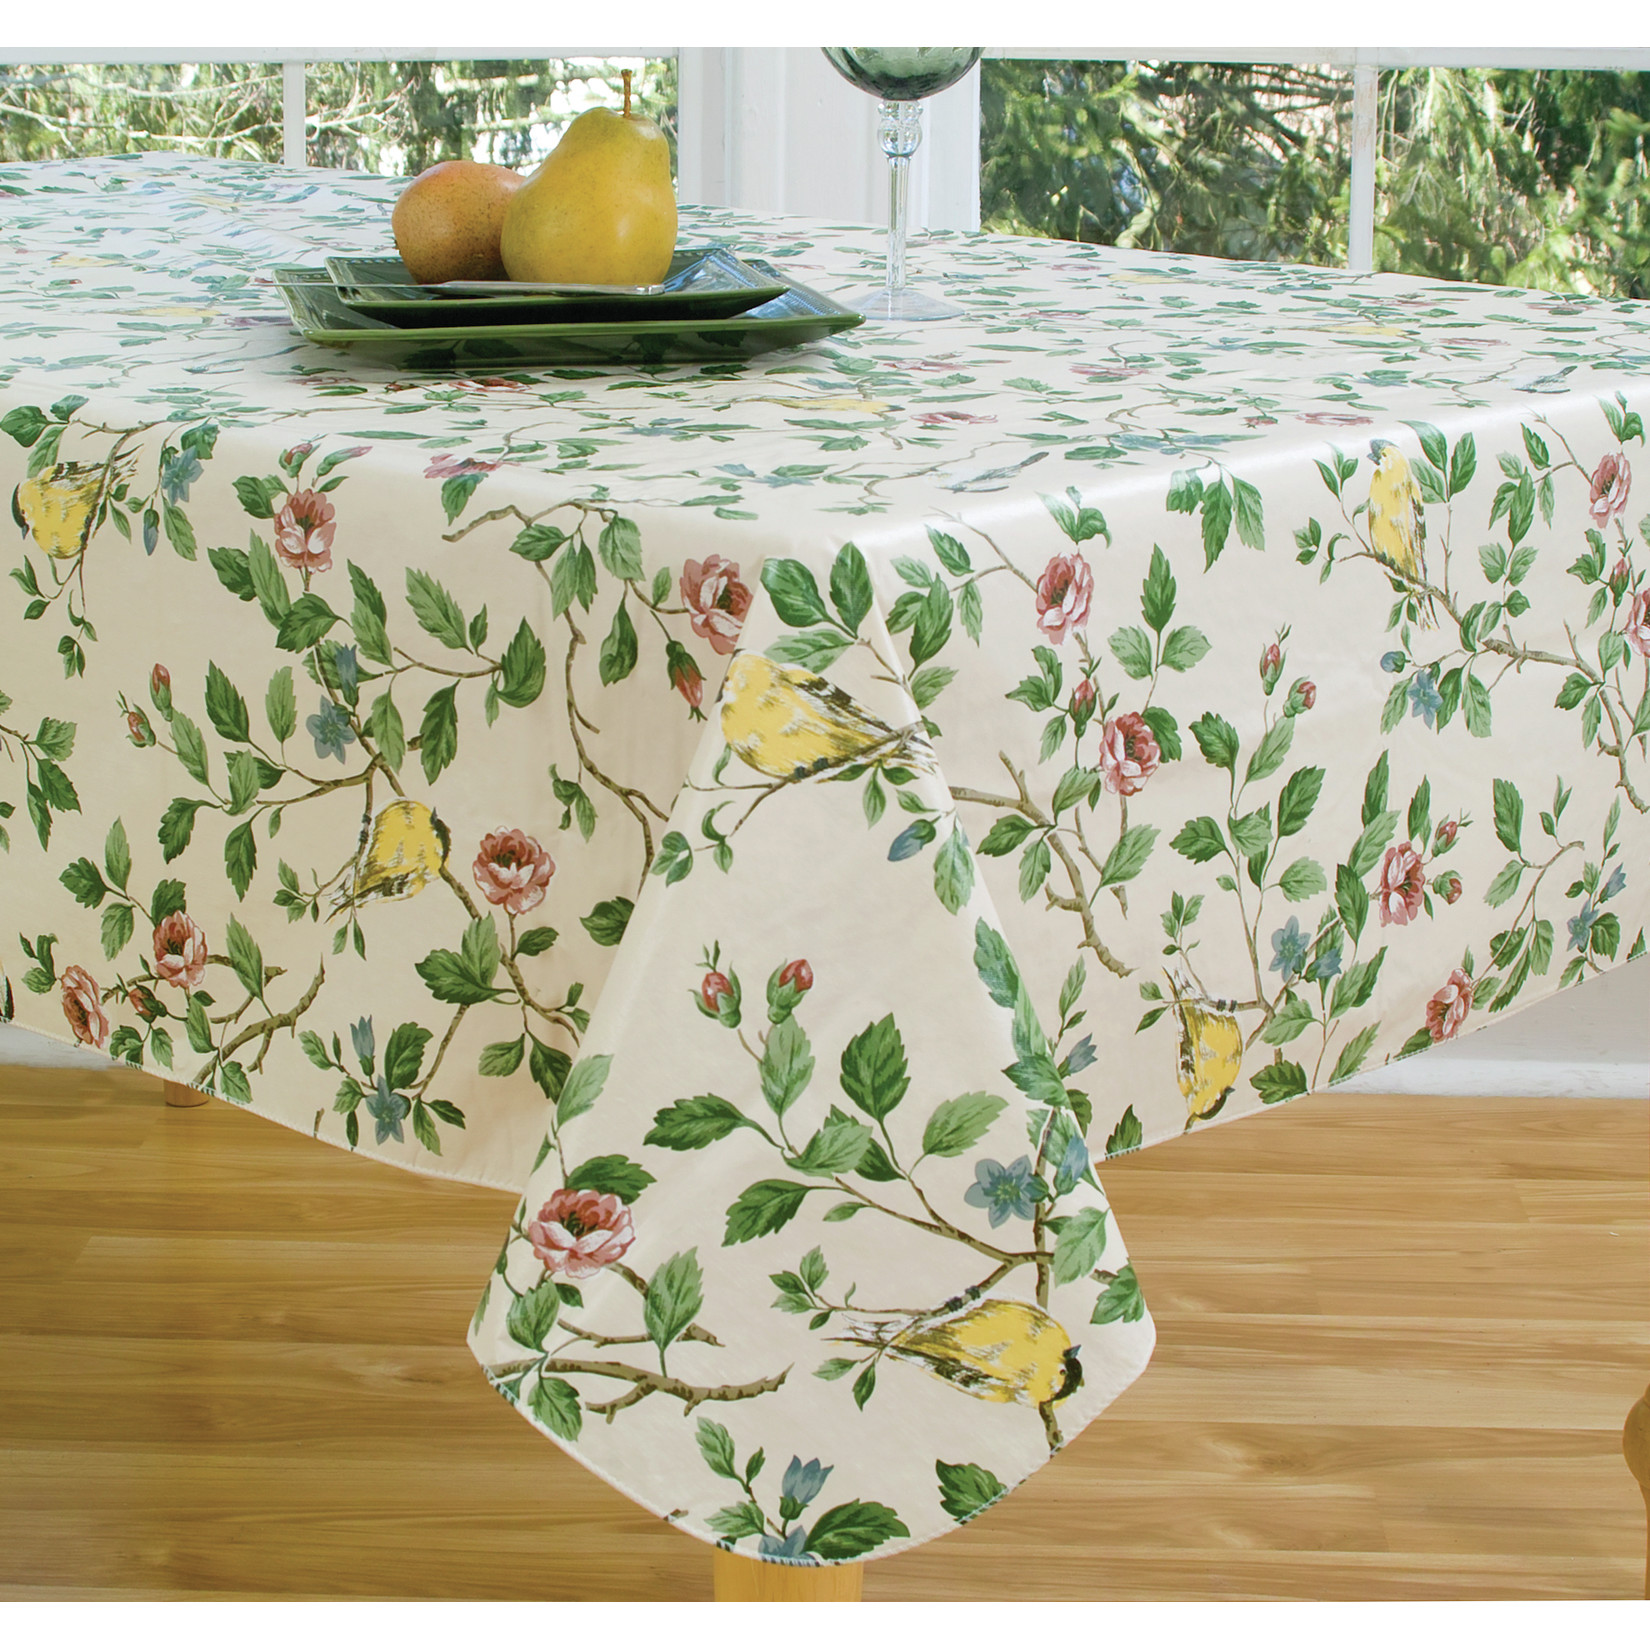 Coffee Table Cloth | Vinyl Tablecloths | Spring Tablecloths